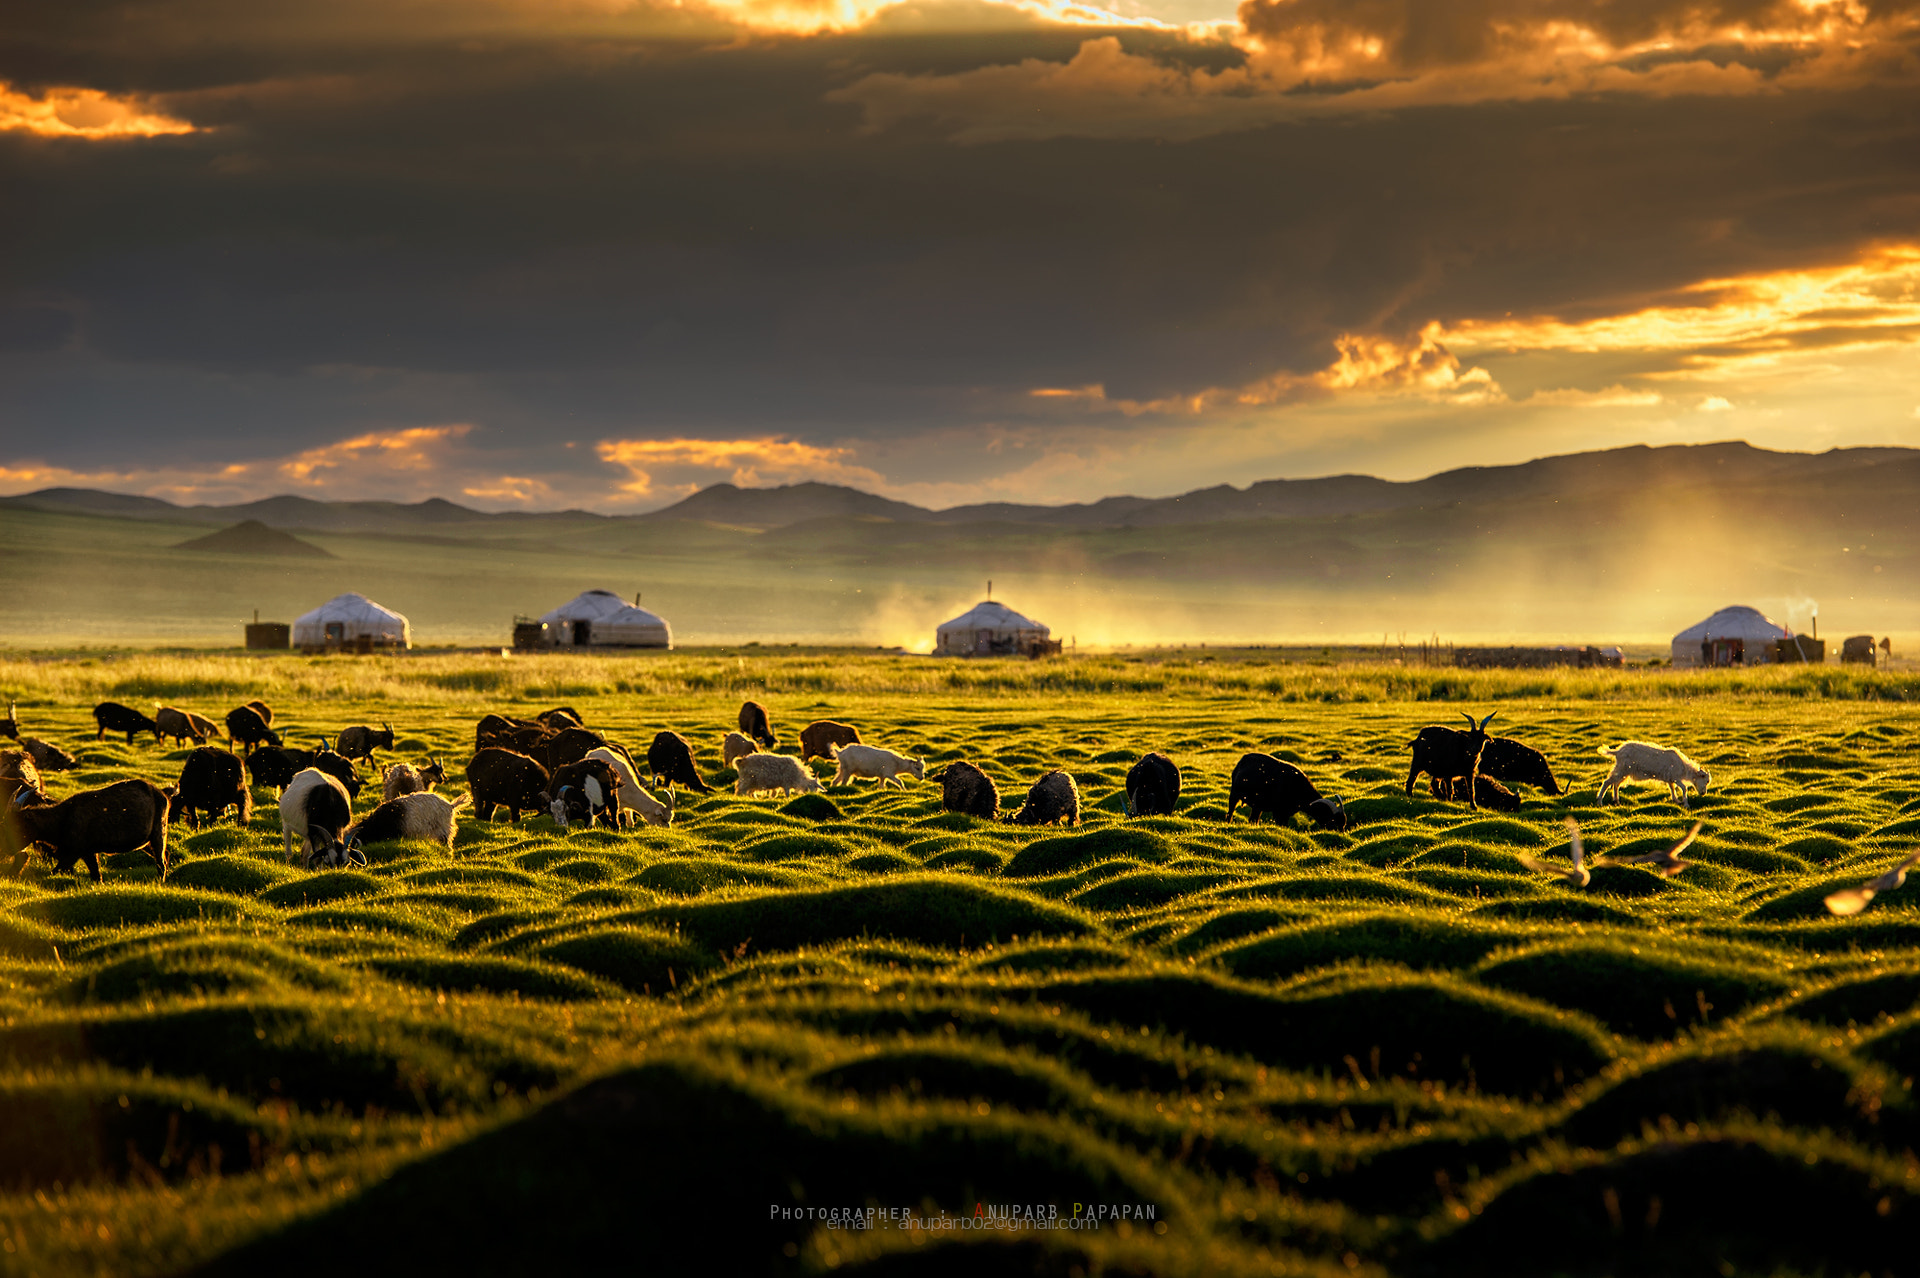 Photograph Mongolia's Golden Time by Anuparb Papapan on 500px